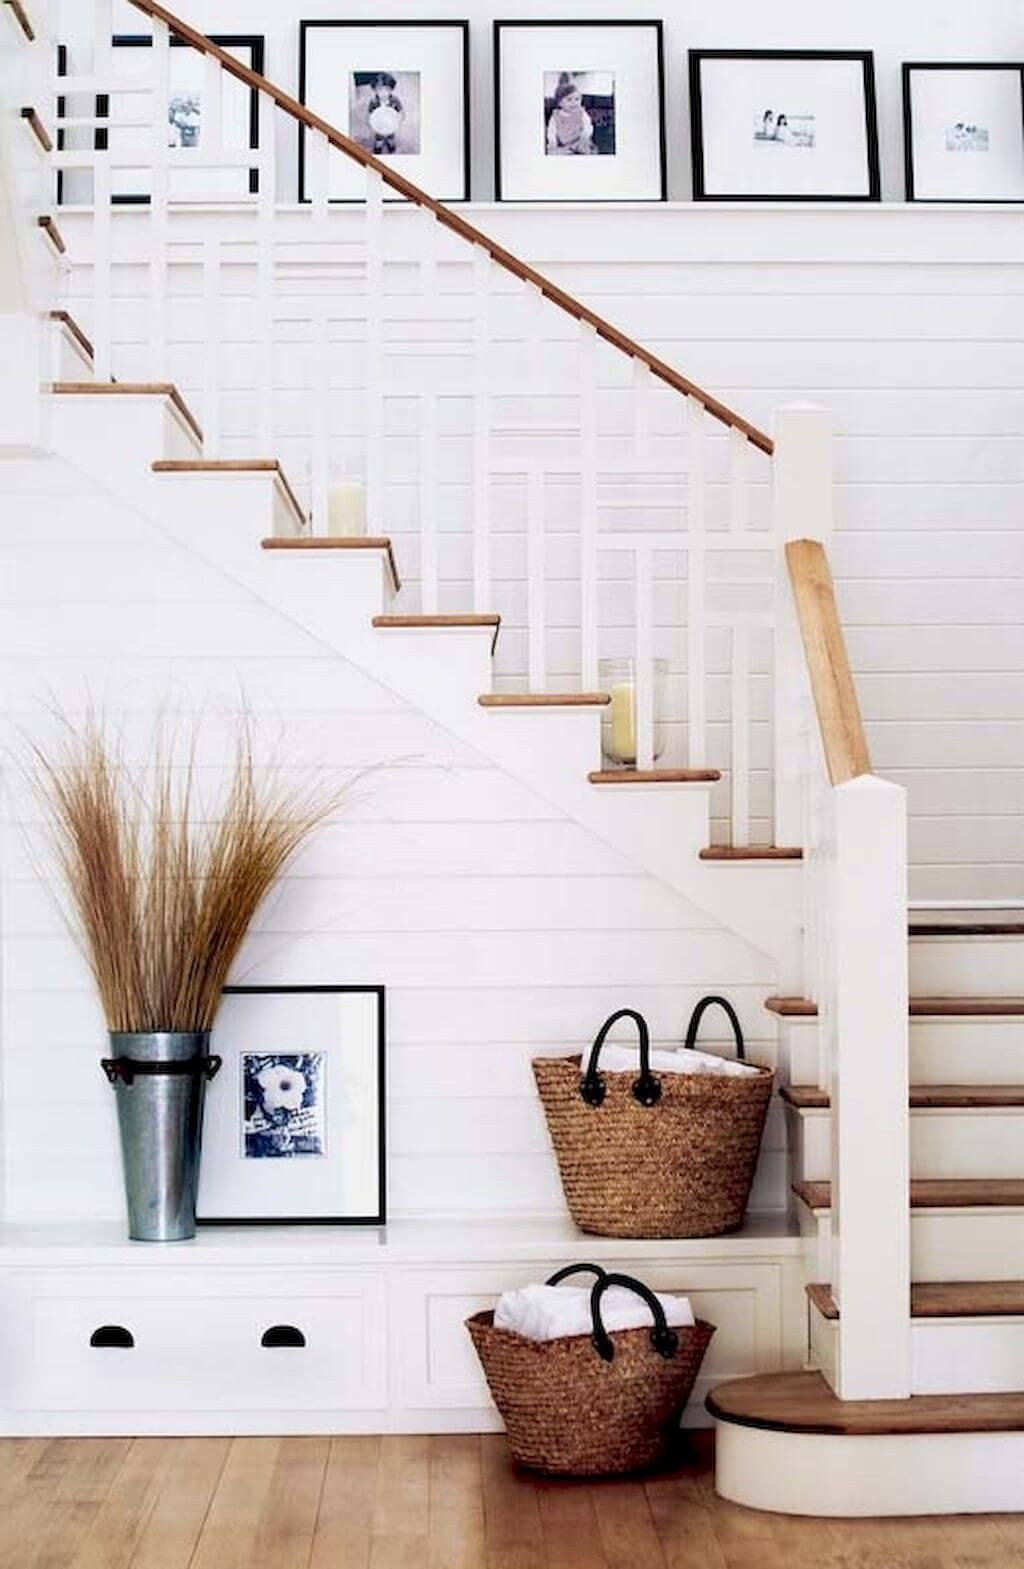 35+ rustic farmhouse interior design ideas that will inspire your next makeovers - home decors -  35+ rustic farmhouse interior design ideas that will inspire your next remodel  - #cutehomedecorations #Decors #design #diyHousedesign #diyInteriordesign #farmhouse #home #Housestyles #ideas #inspire #interior #makeovers #rustic #simplehousediy